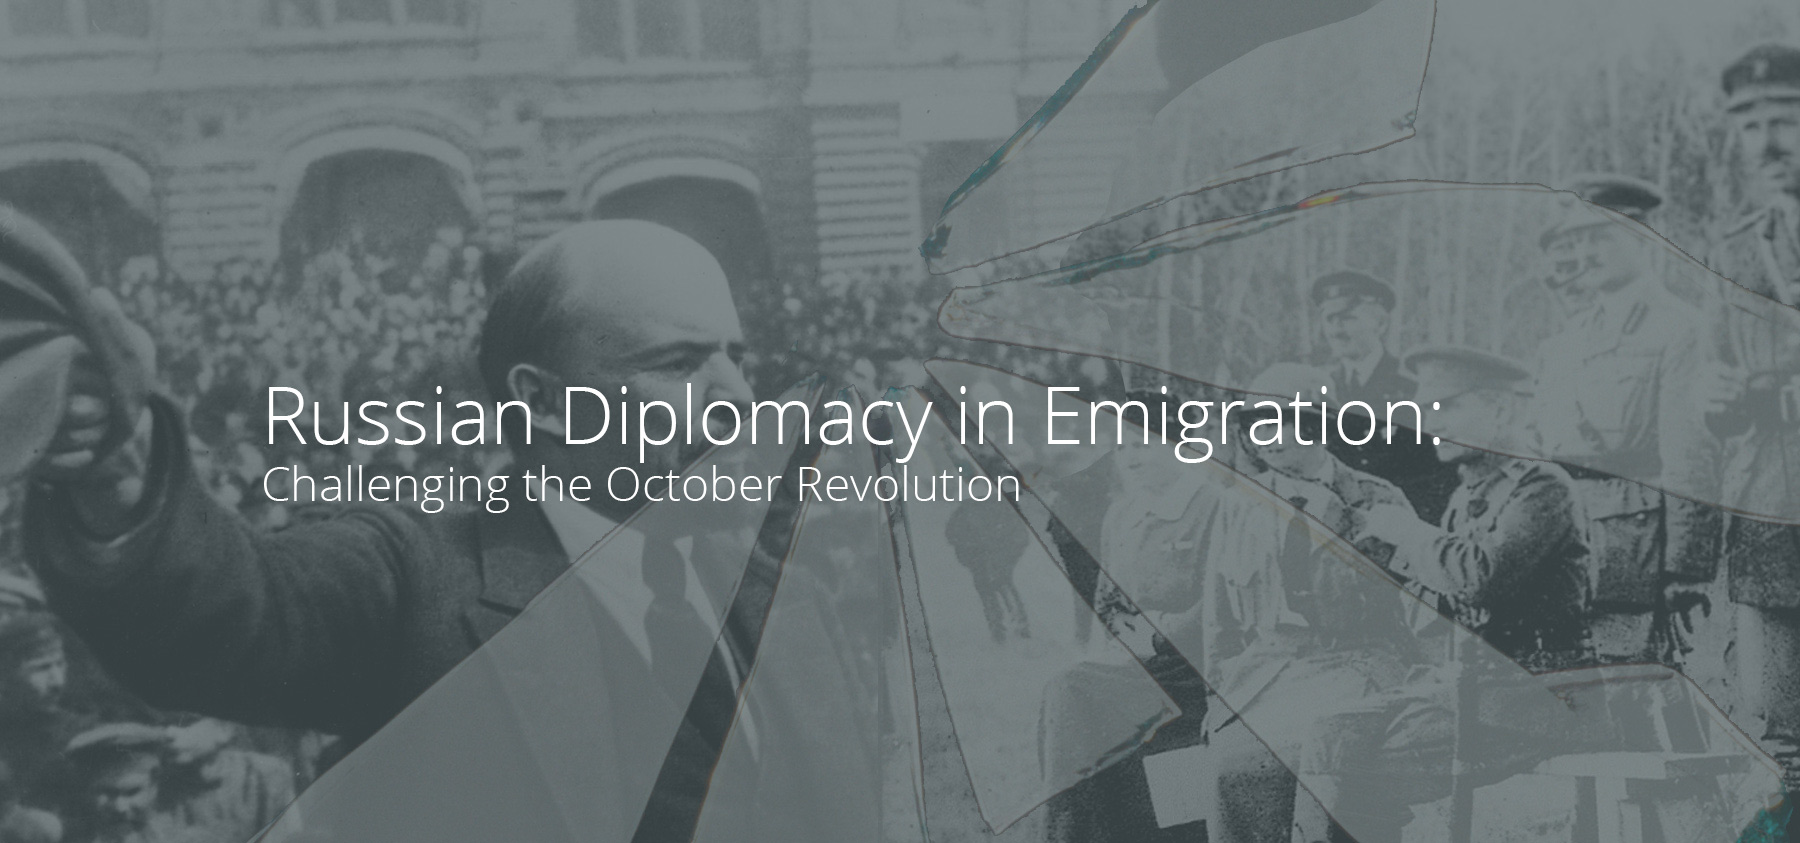 Russian Diplomacy in Emigration: Challenging the October